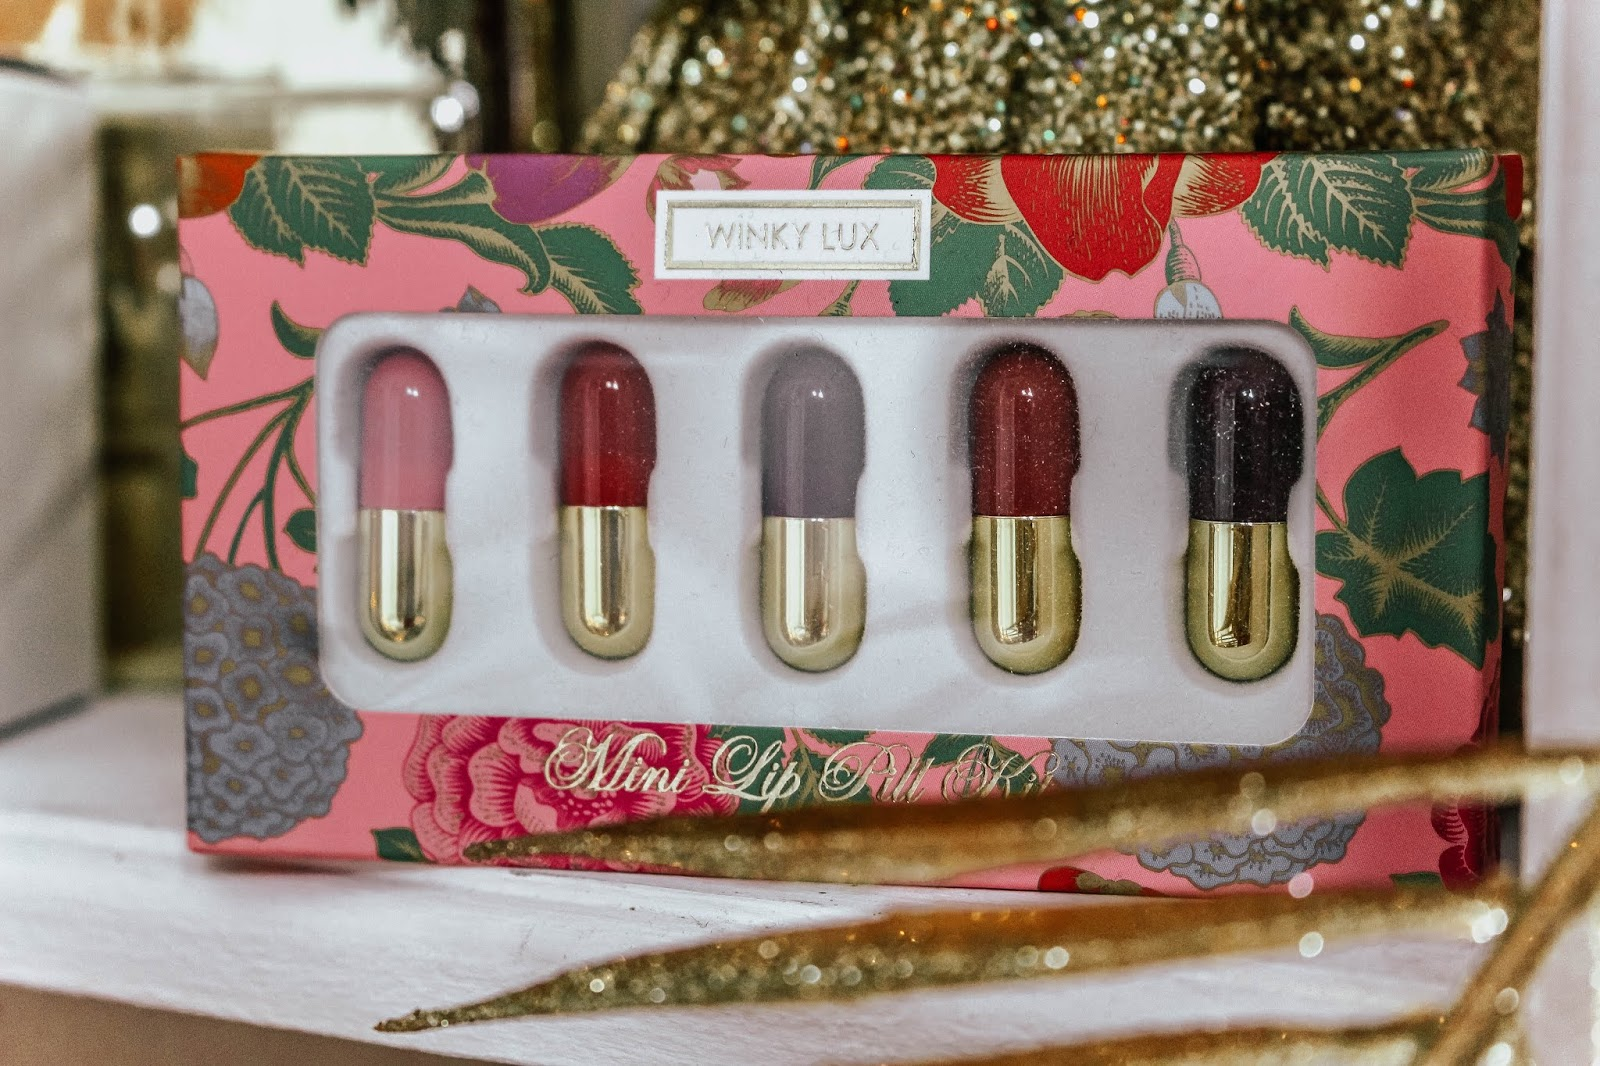 Winky Lux UK Mini Lip Pill KIt Gift Guide